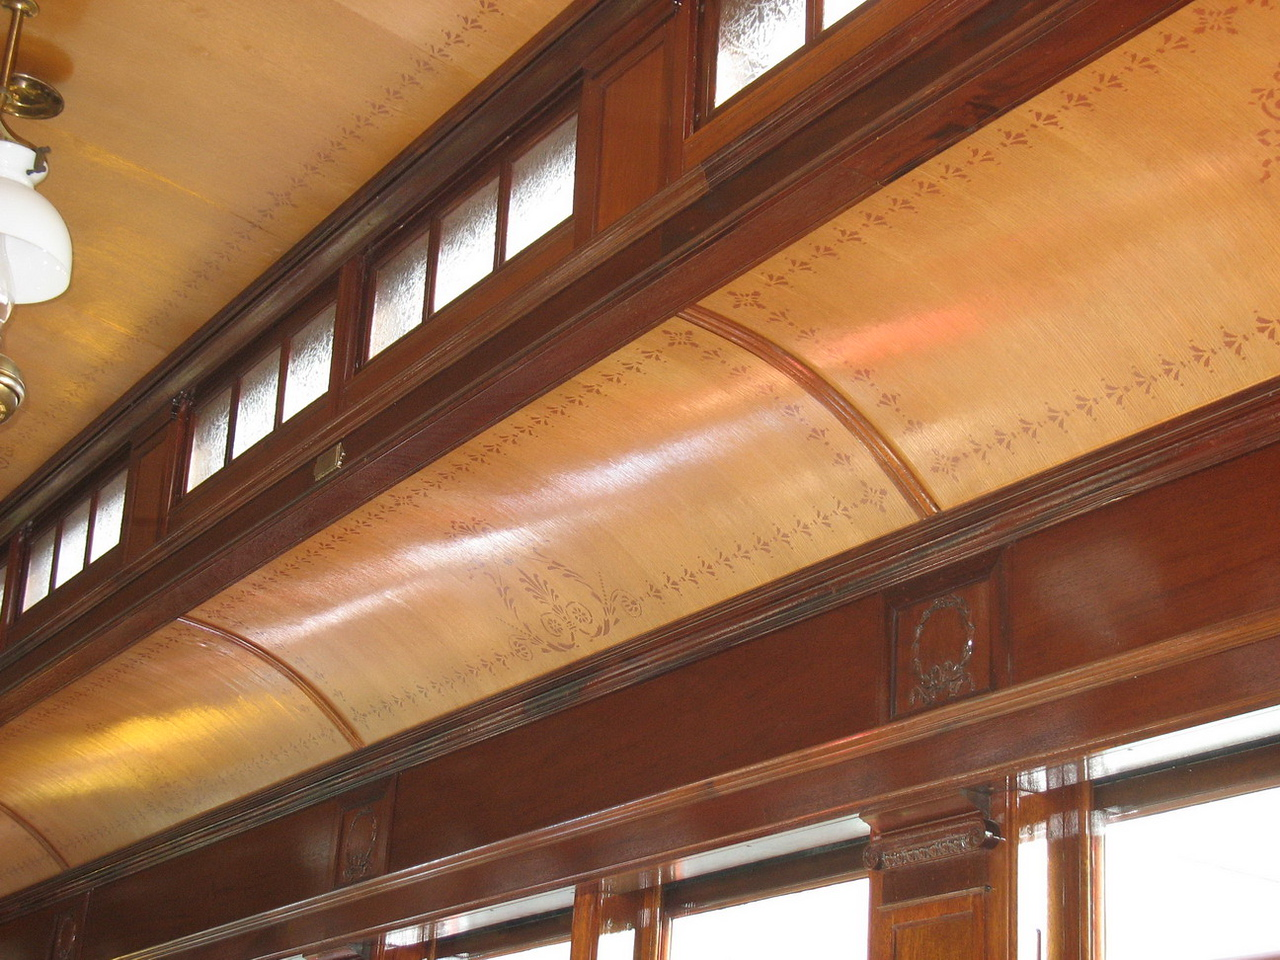 Detail of the train car